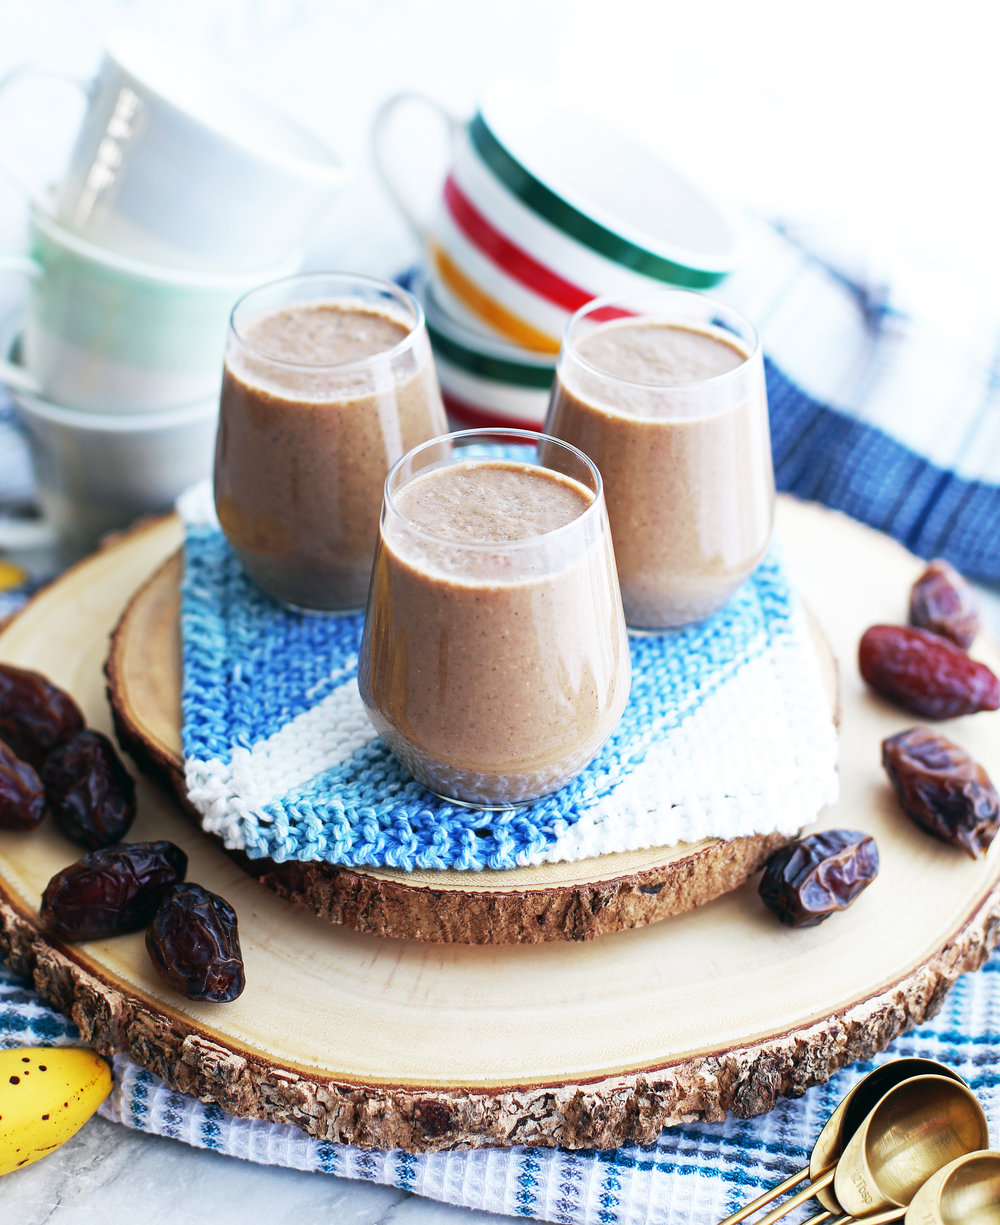 Three glasses of creamy date coffee breakfast smoothies on a wooden platter surrounded by medjool dates and coffee mugs.